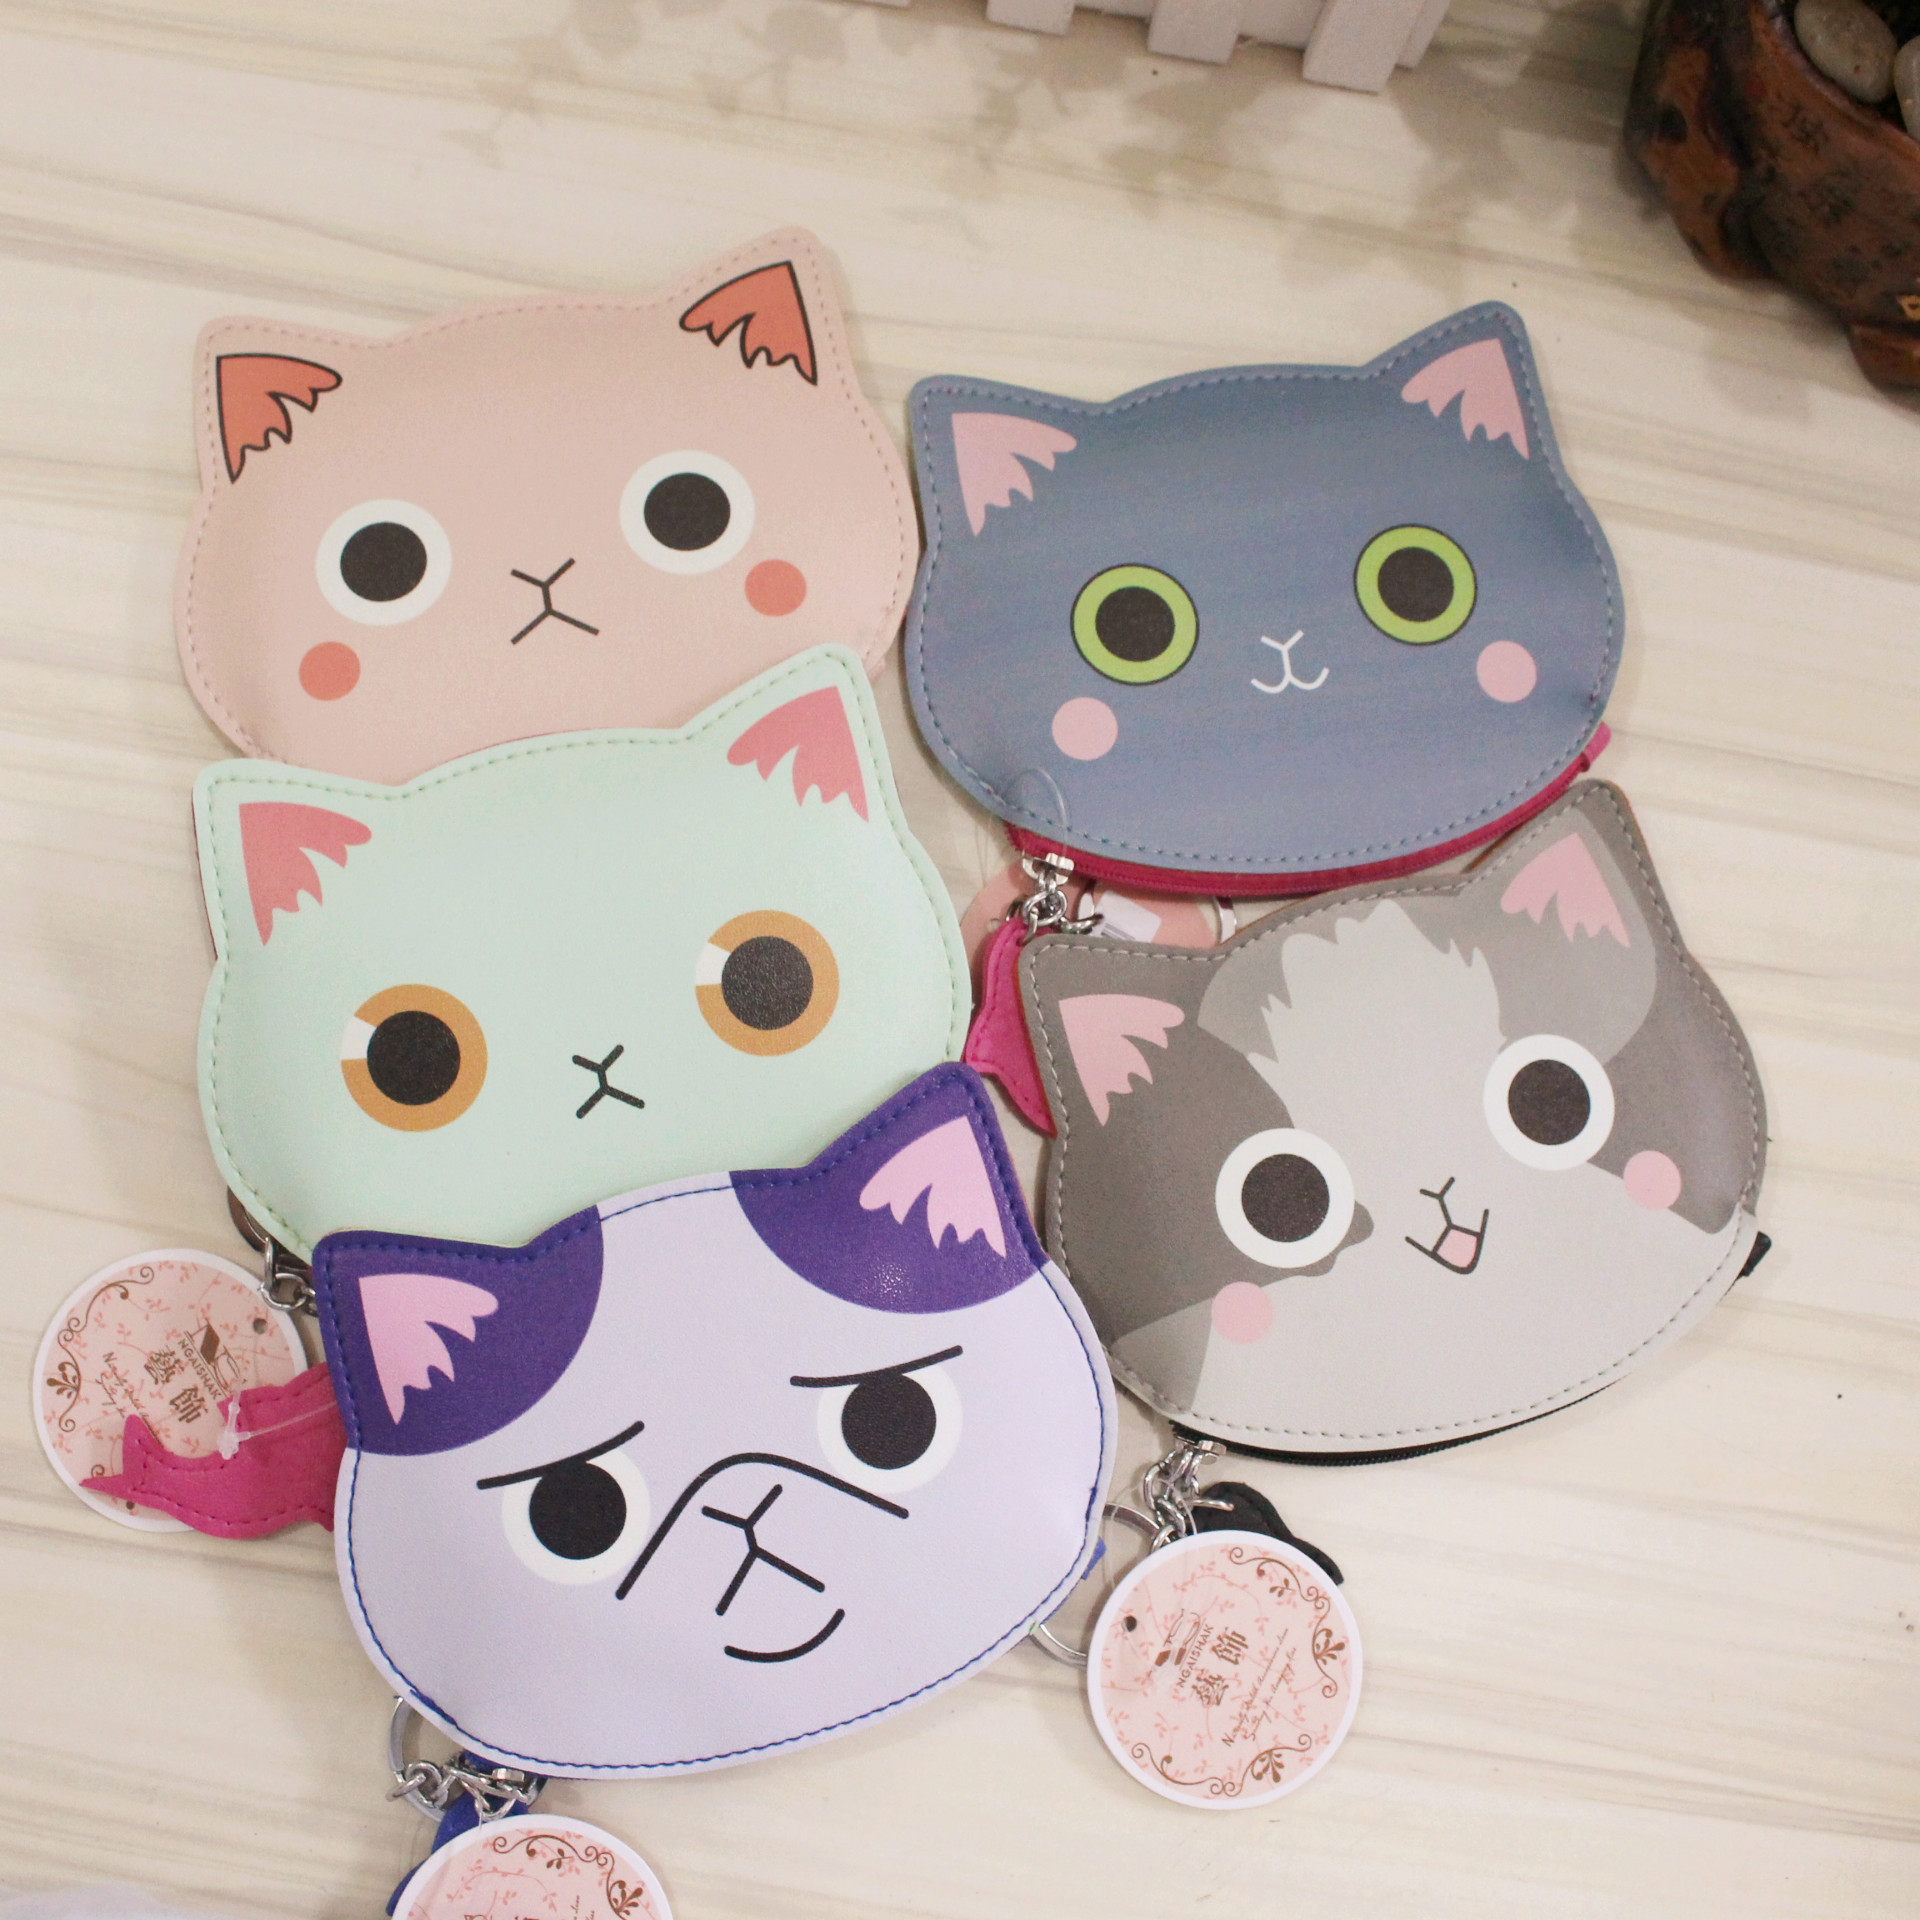 2017 Creative Cute Cartoon Coin Purse Key Chain For Girls Leather Lovely Cat Kids Zipper Handhold Change Wallet Card Holder new cute hello kitty handbag pink red girls purse cartoon cat coin bag ladies keychain wallets zipper key holder cash case